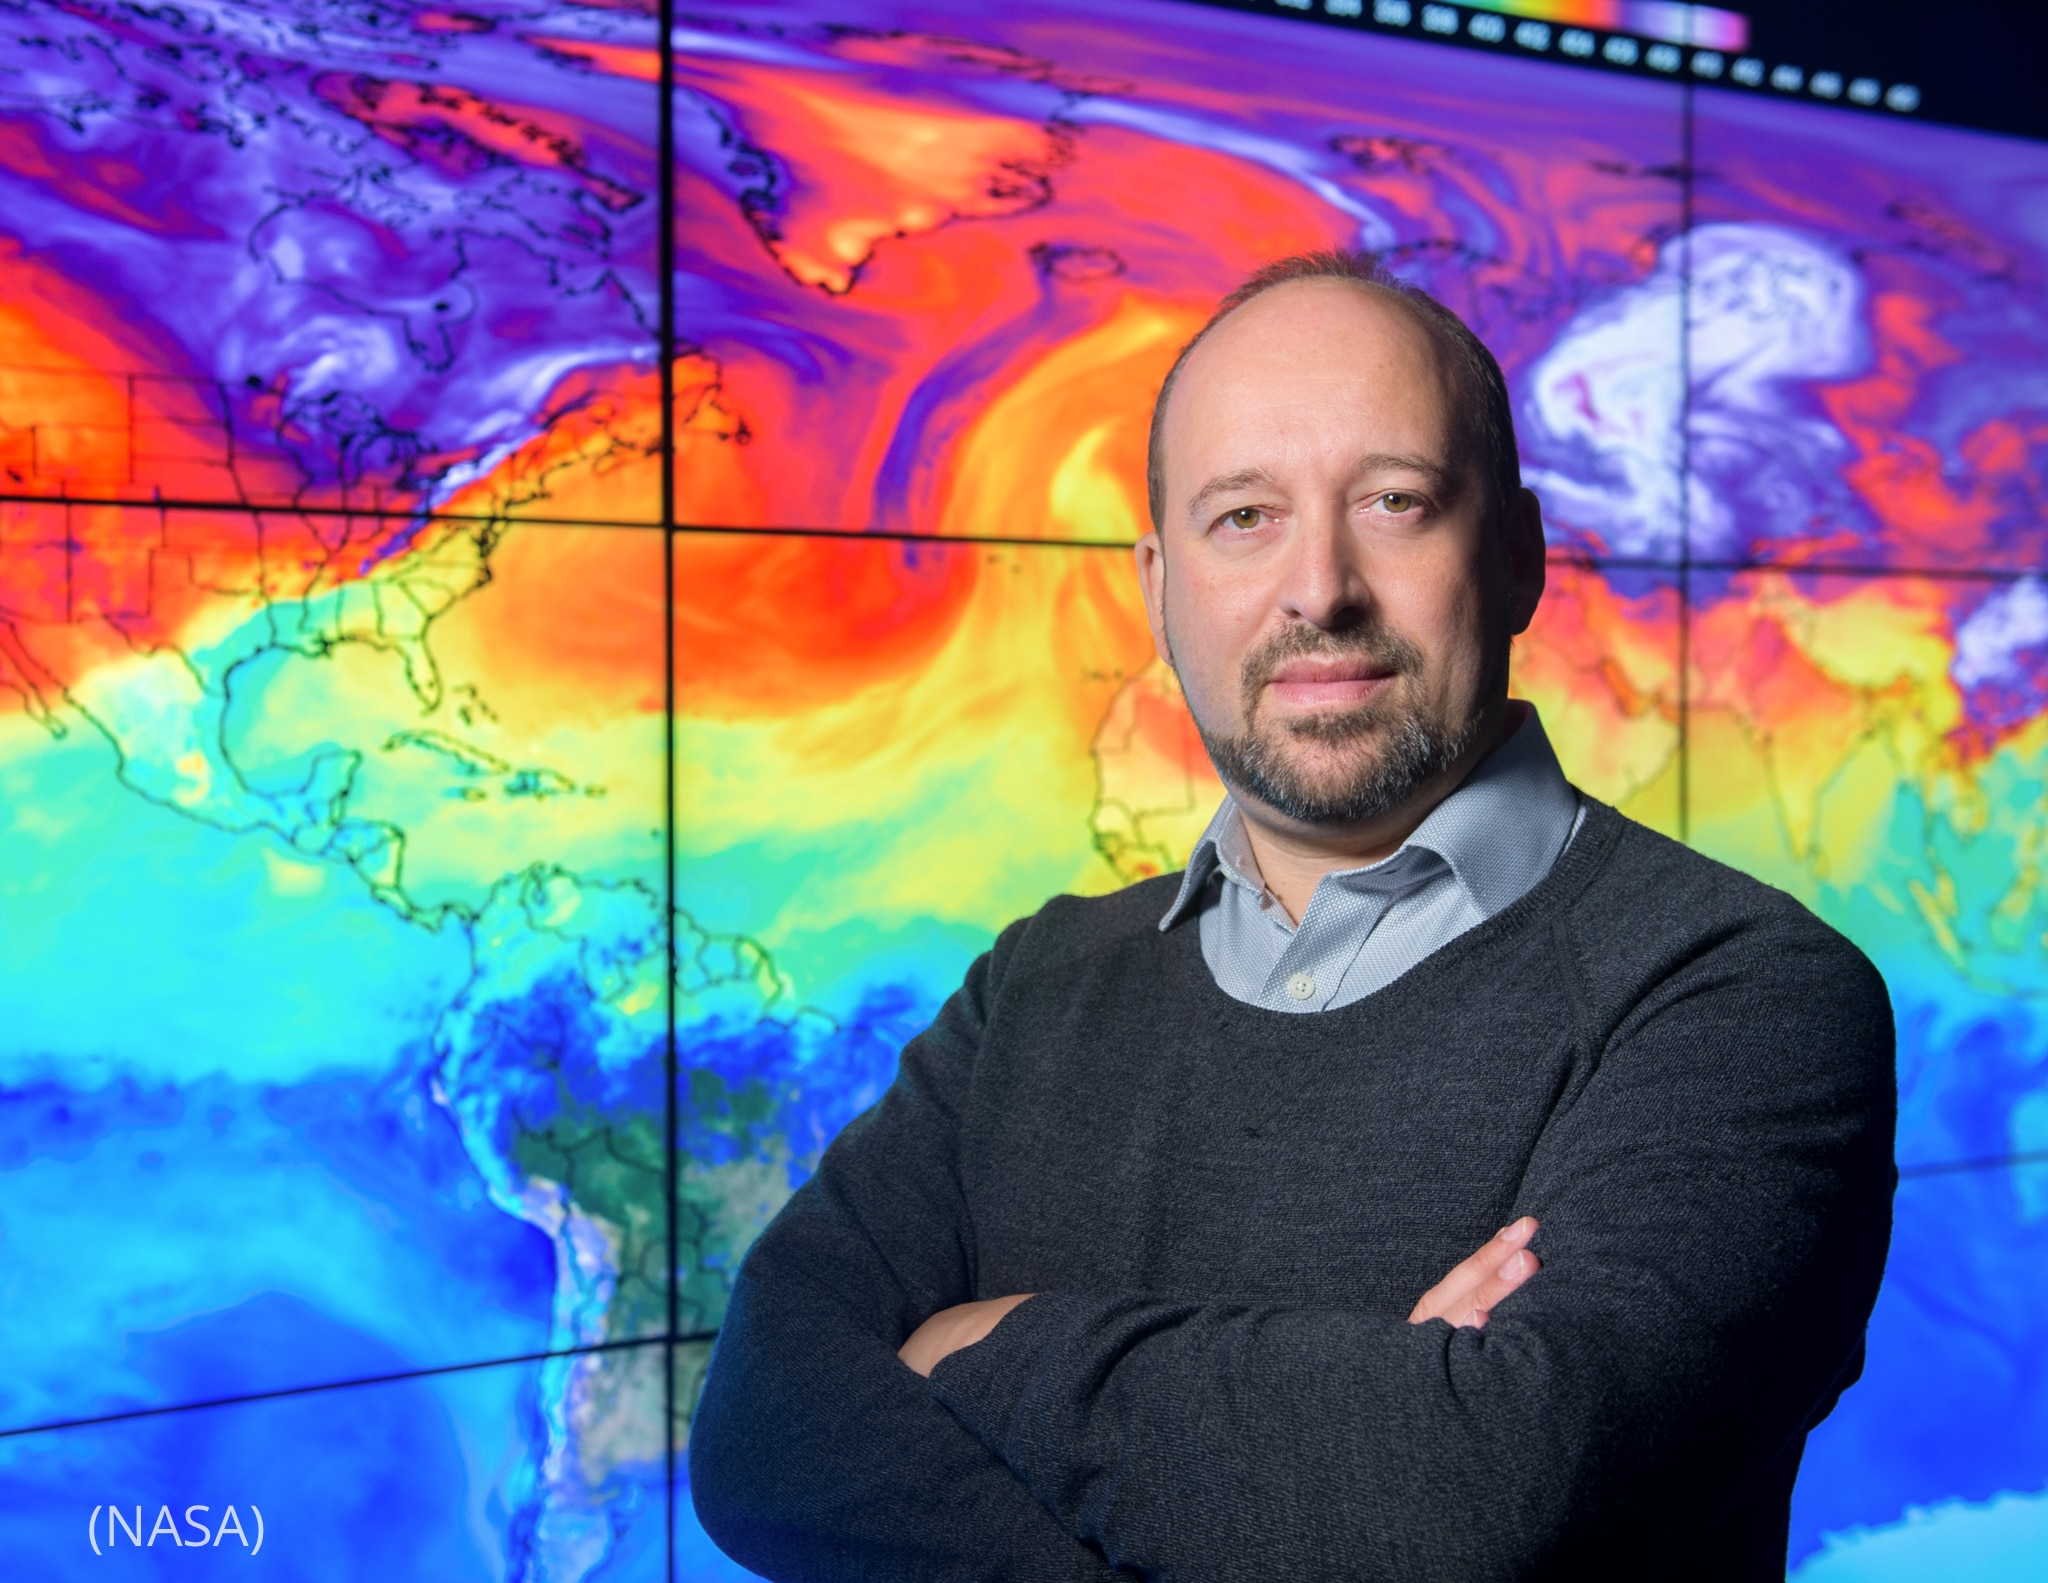 Gavin Schmidt standing in front of colorful world map on multiple screens (NASA)